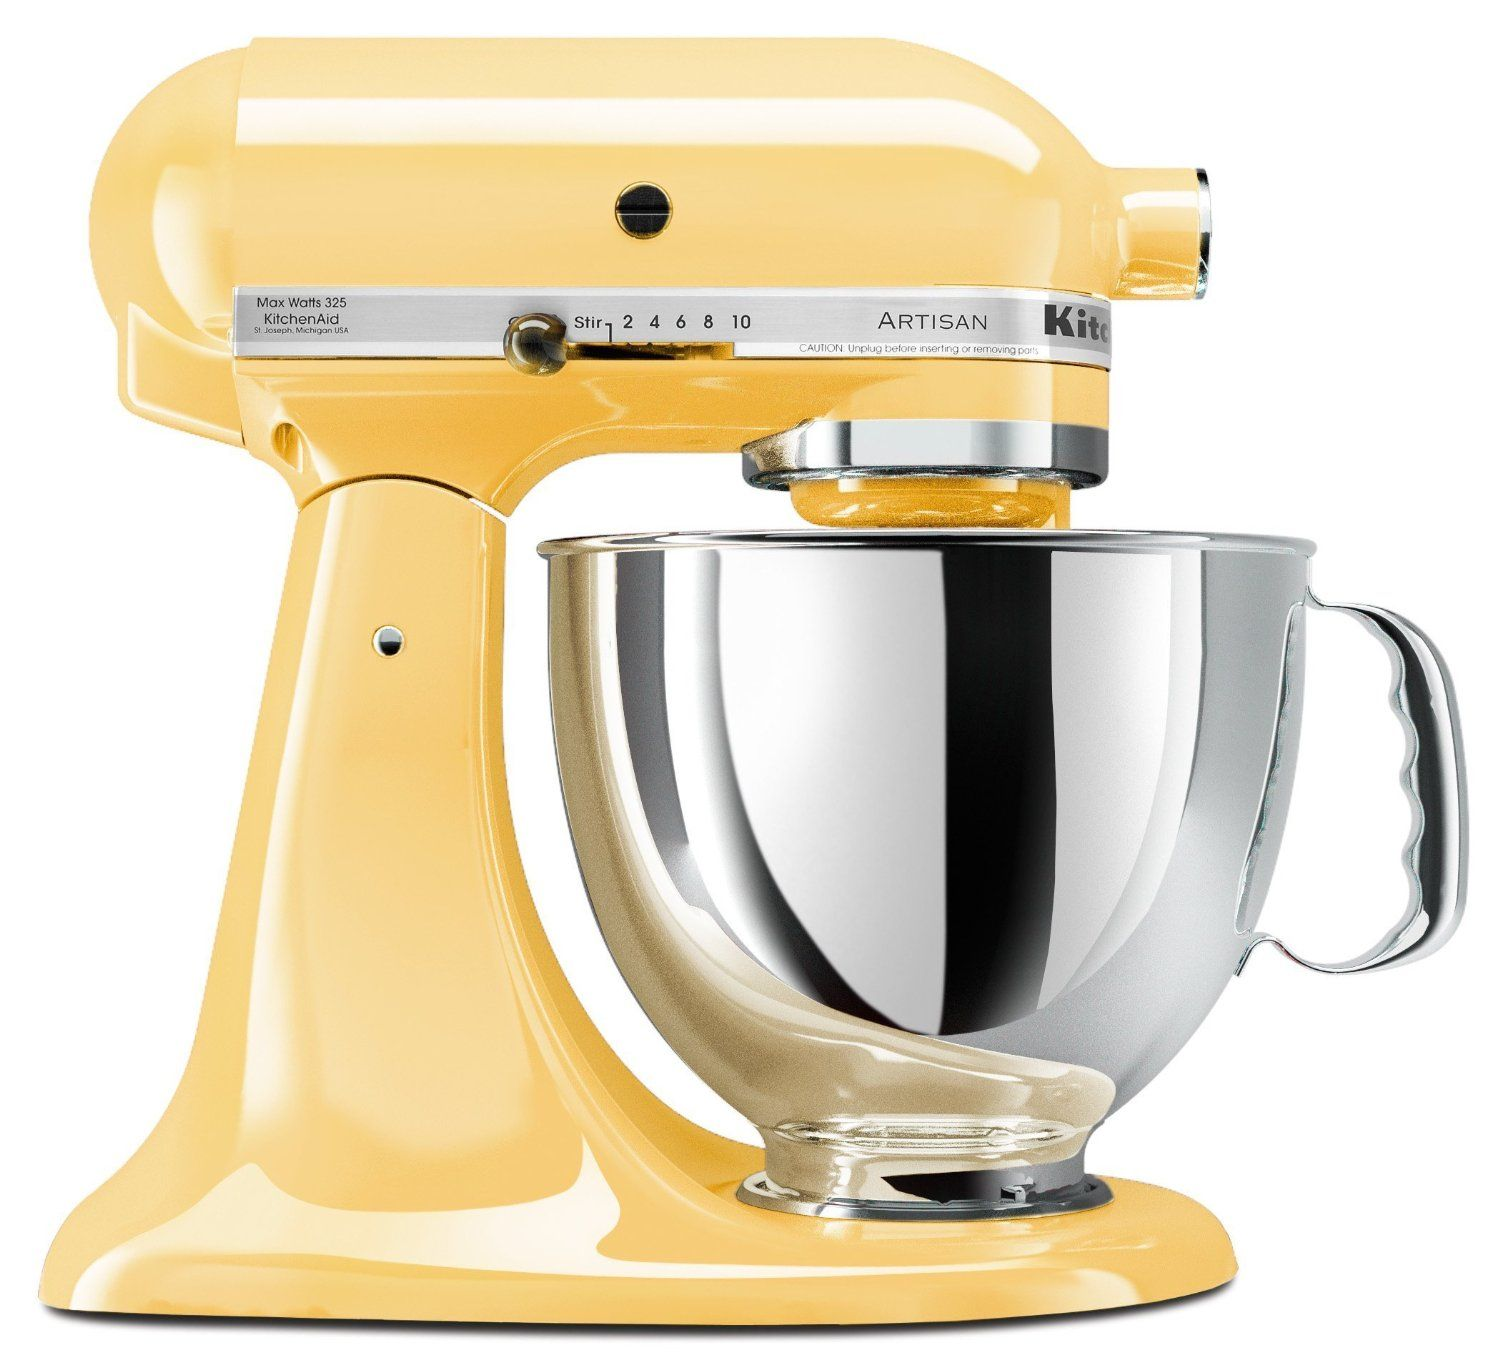 Mixer Kitchen Aid Bay Window Seat Table Yellow